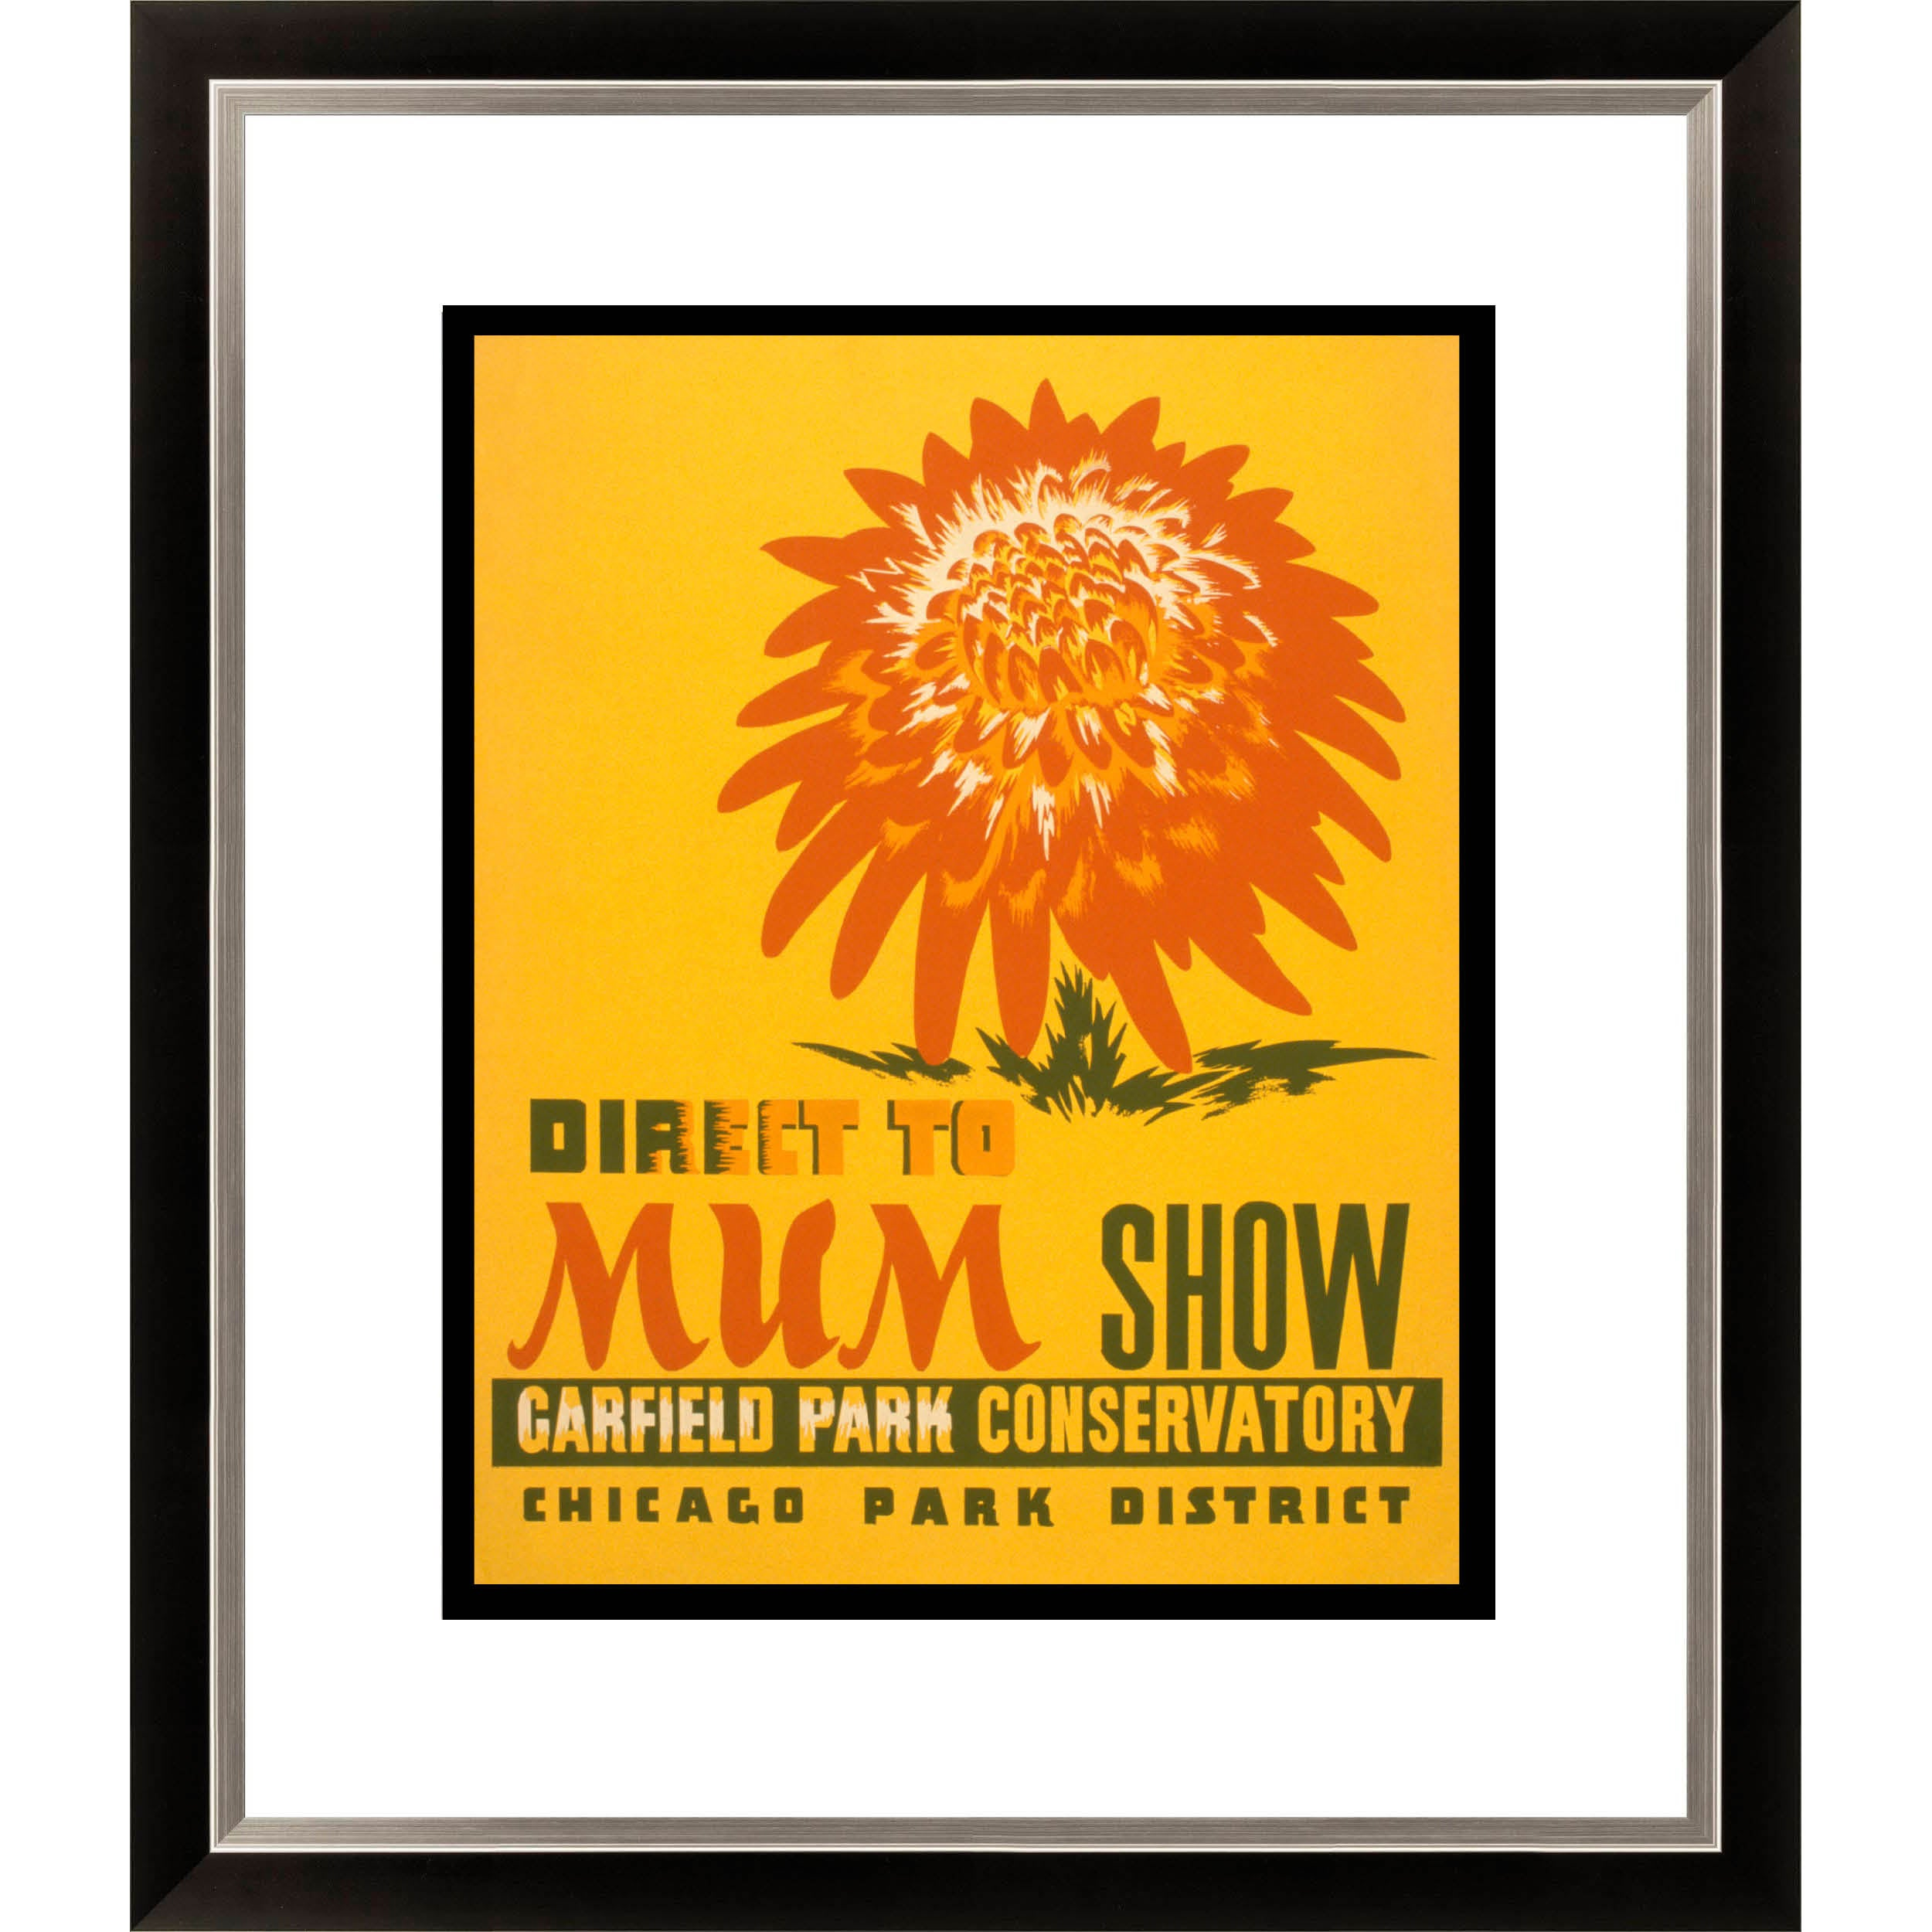 Direct to Mum Show Garfield Park Conservatory Framed Limited Edition Giclee Art